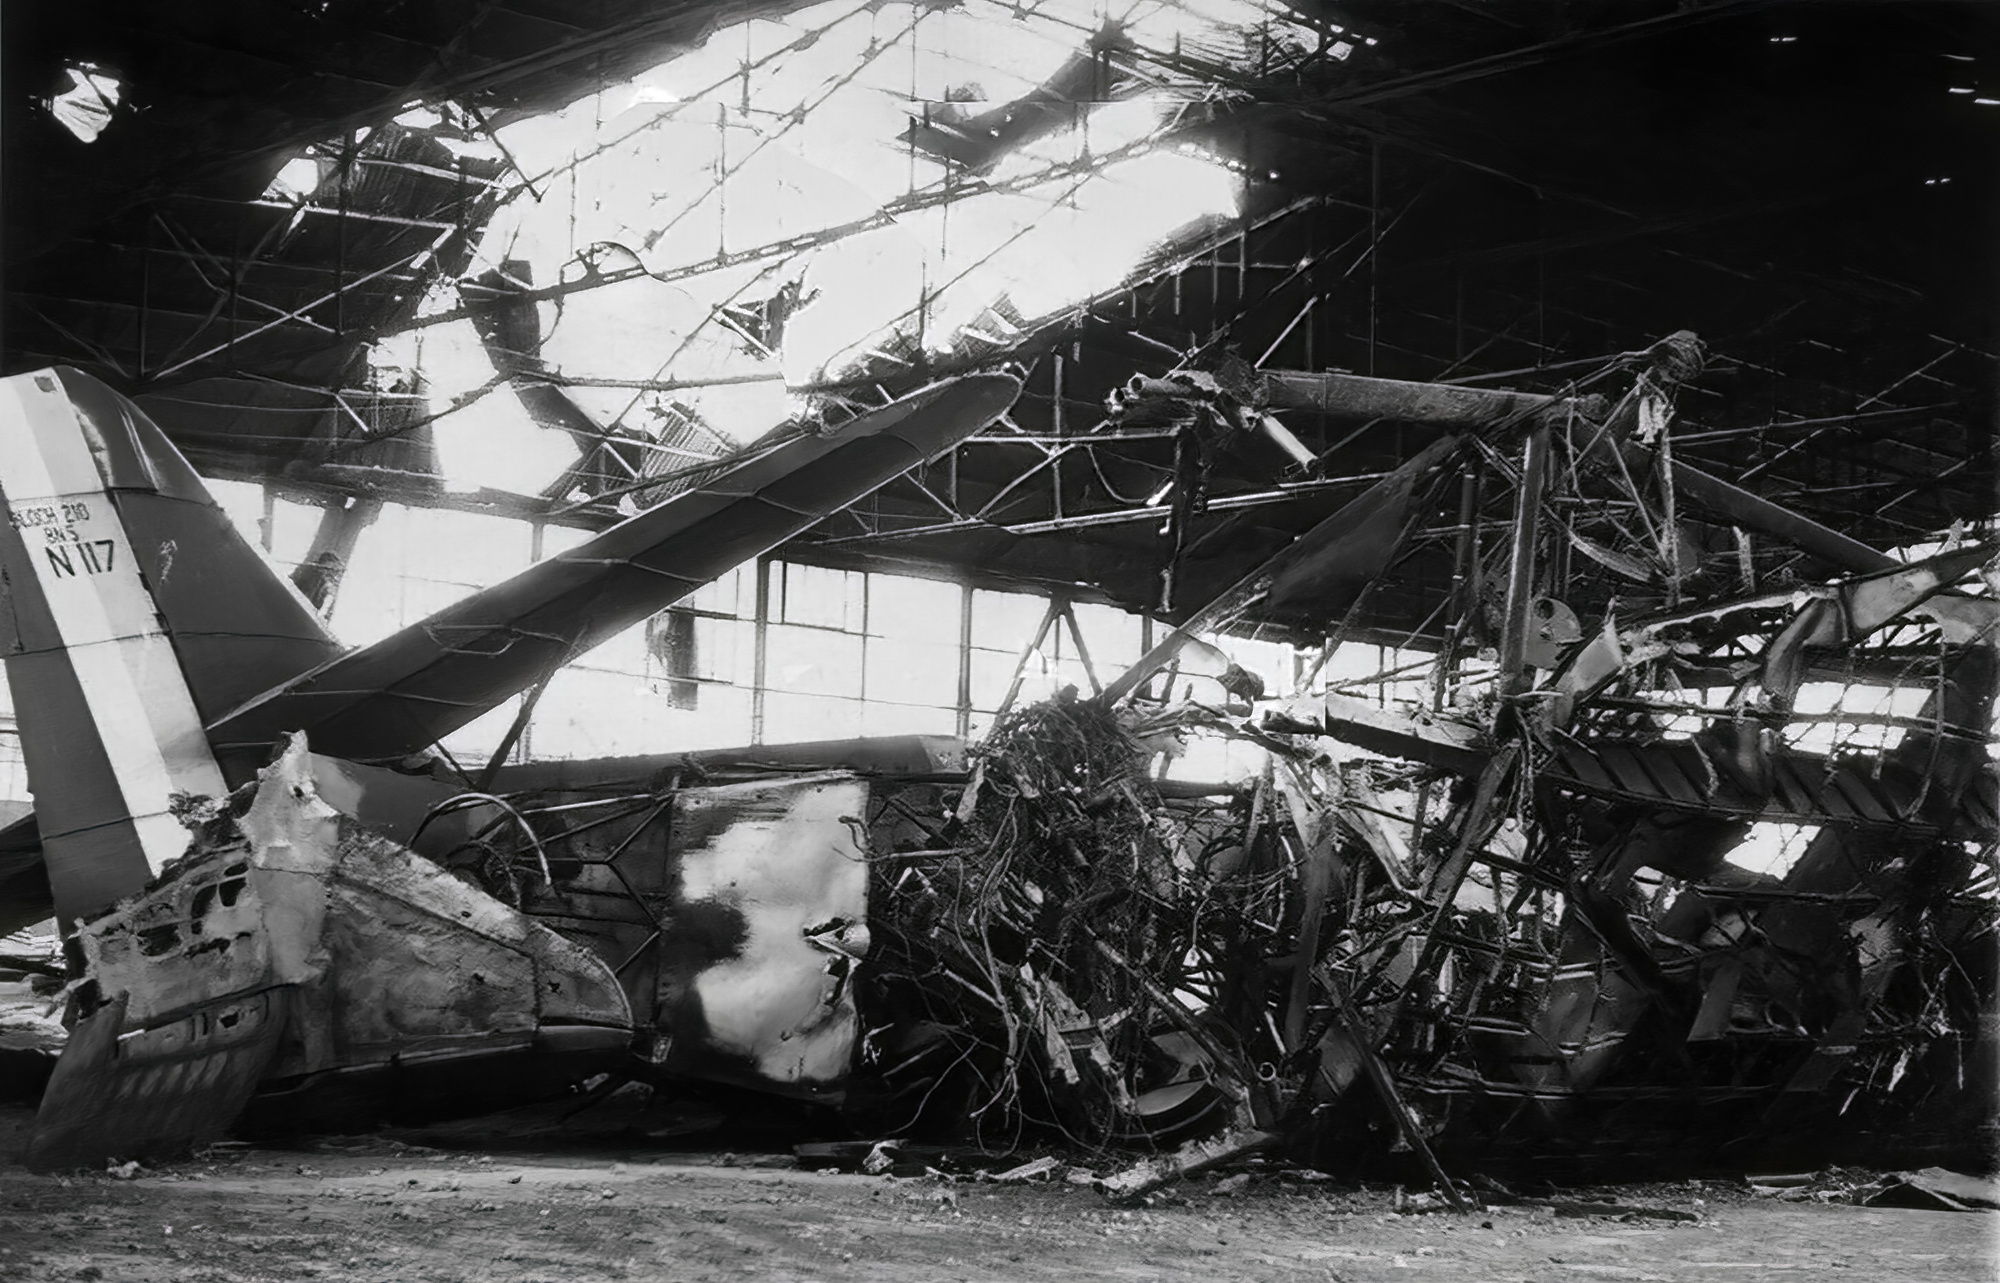 French Airforce Bloch MB 210 destroyed by a Luftwaffe raid France May 1940 ebay 01